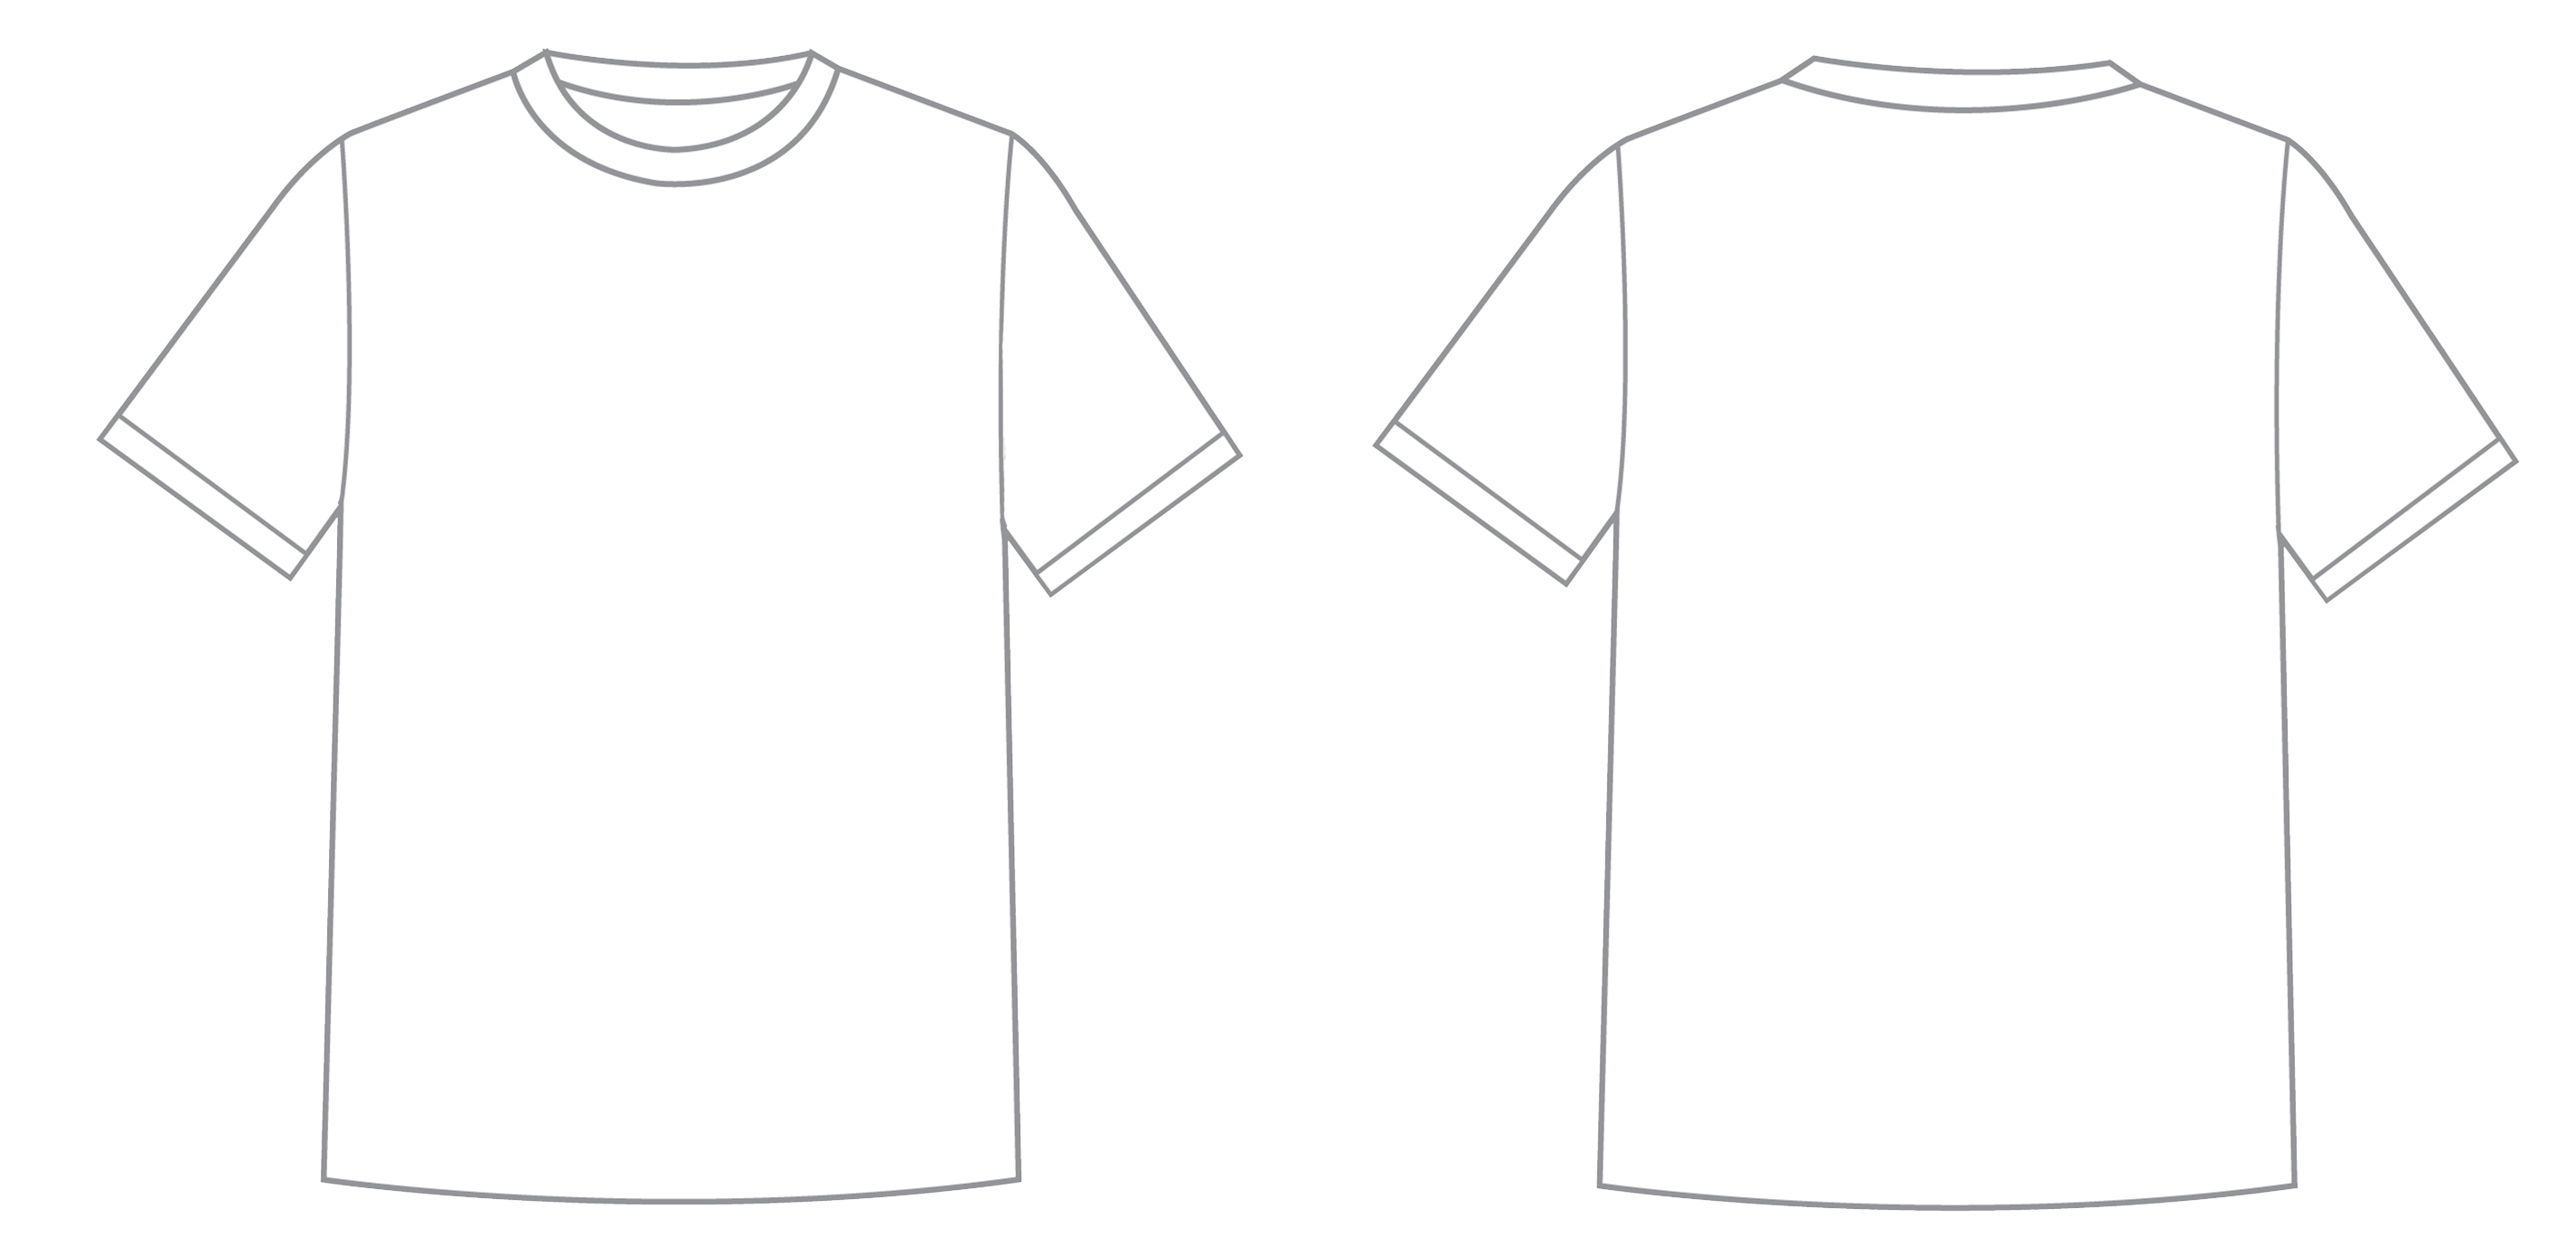 Black t shirt template png. High quality image arts